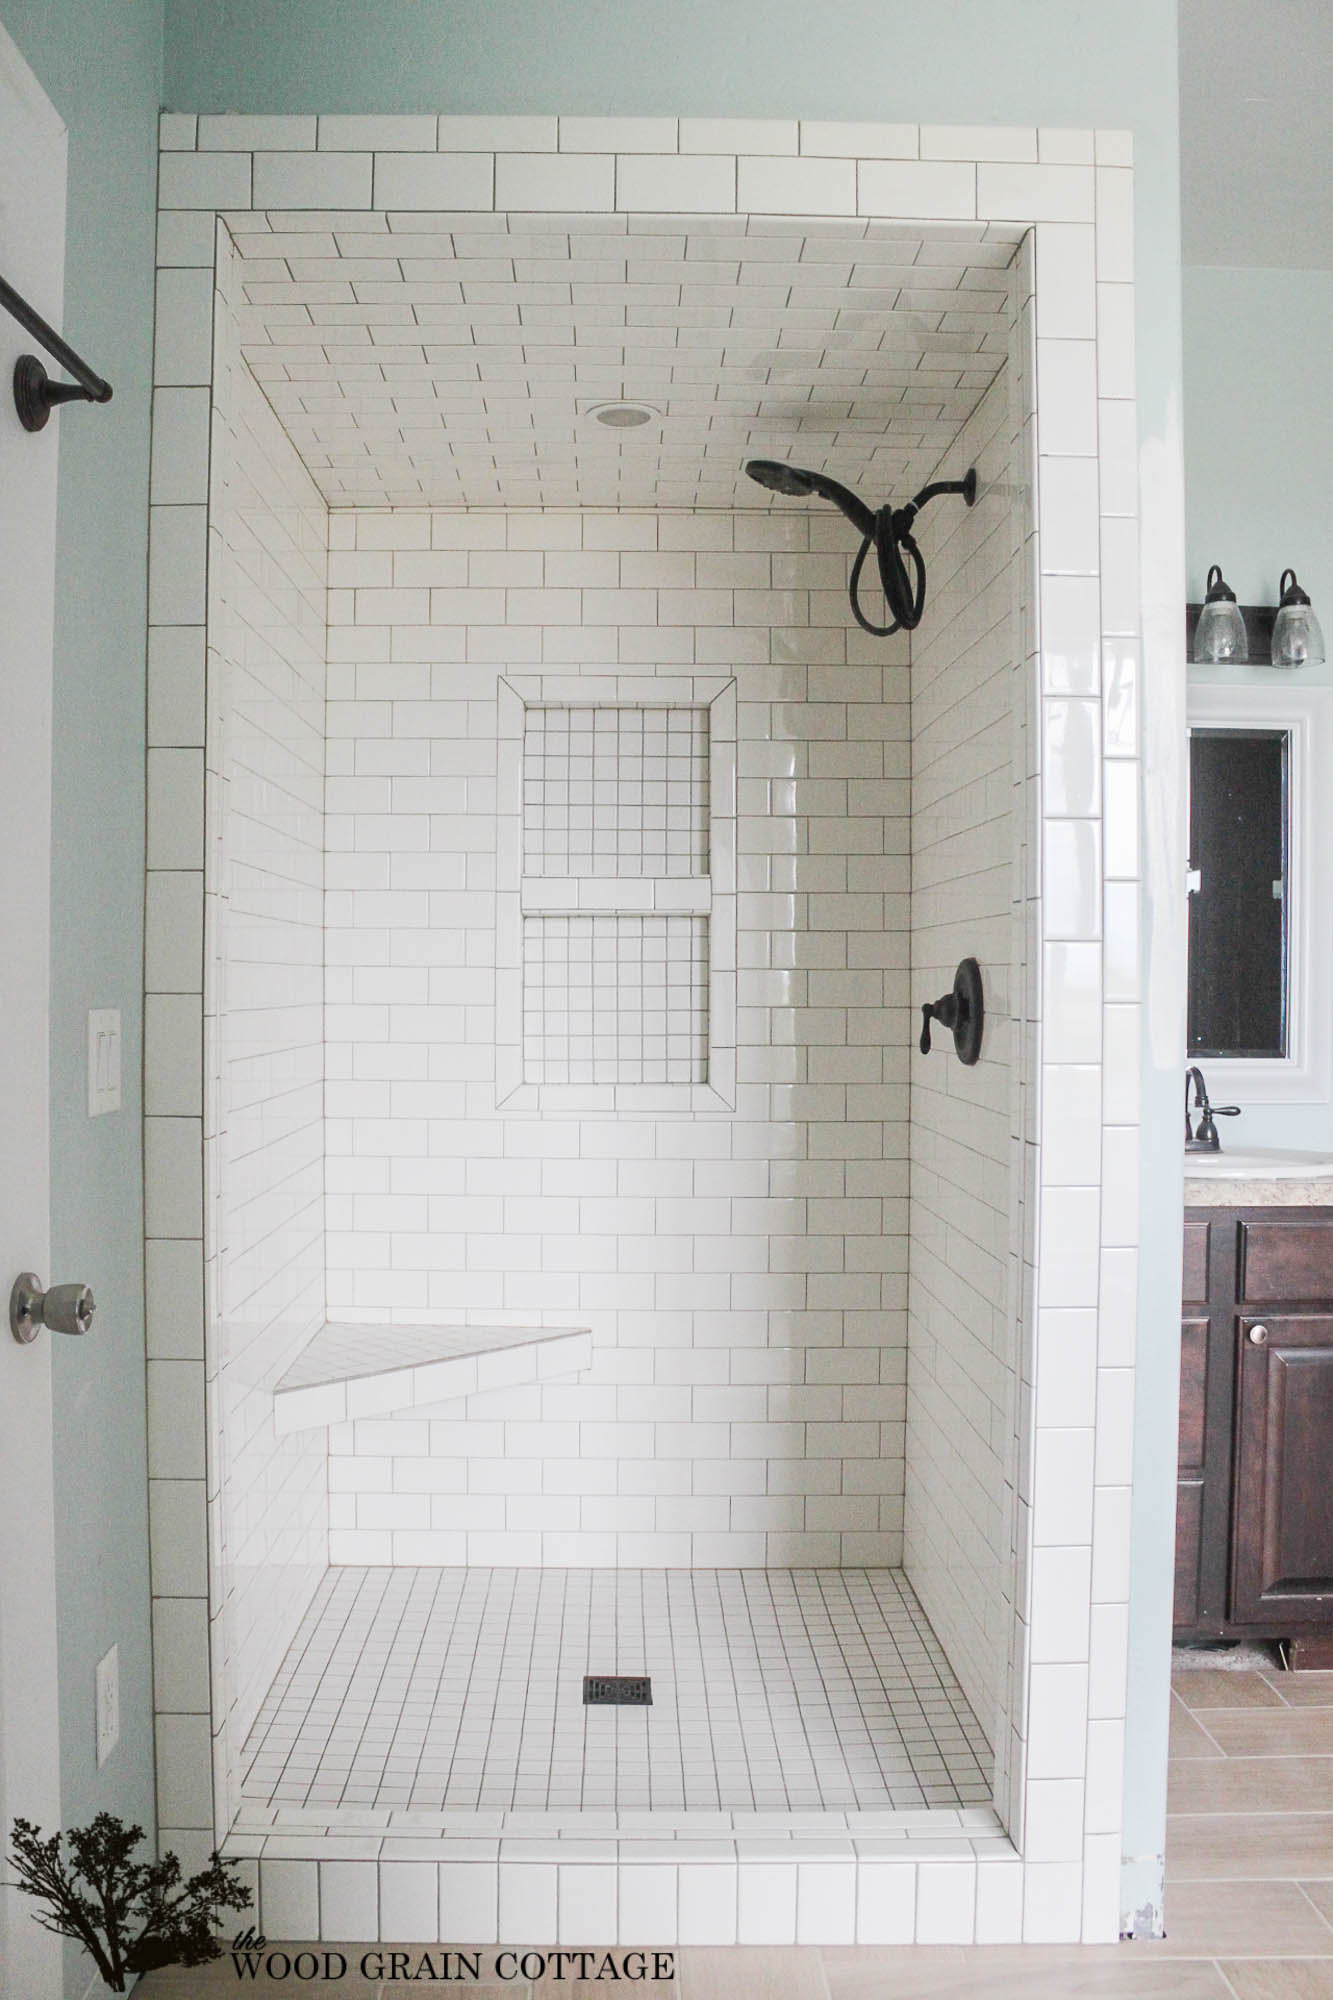 New Master Bathroom Tile by The Wood Grain Cottage 8